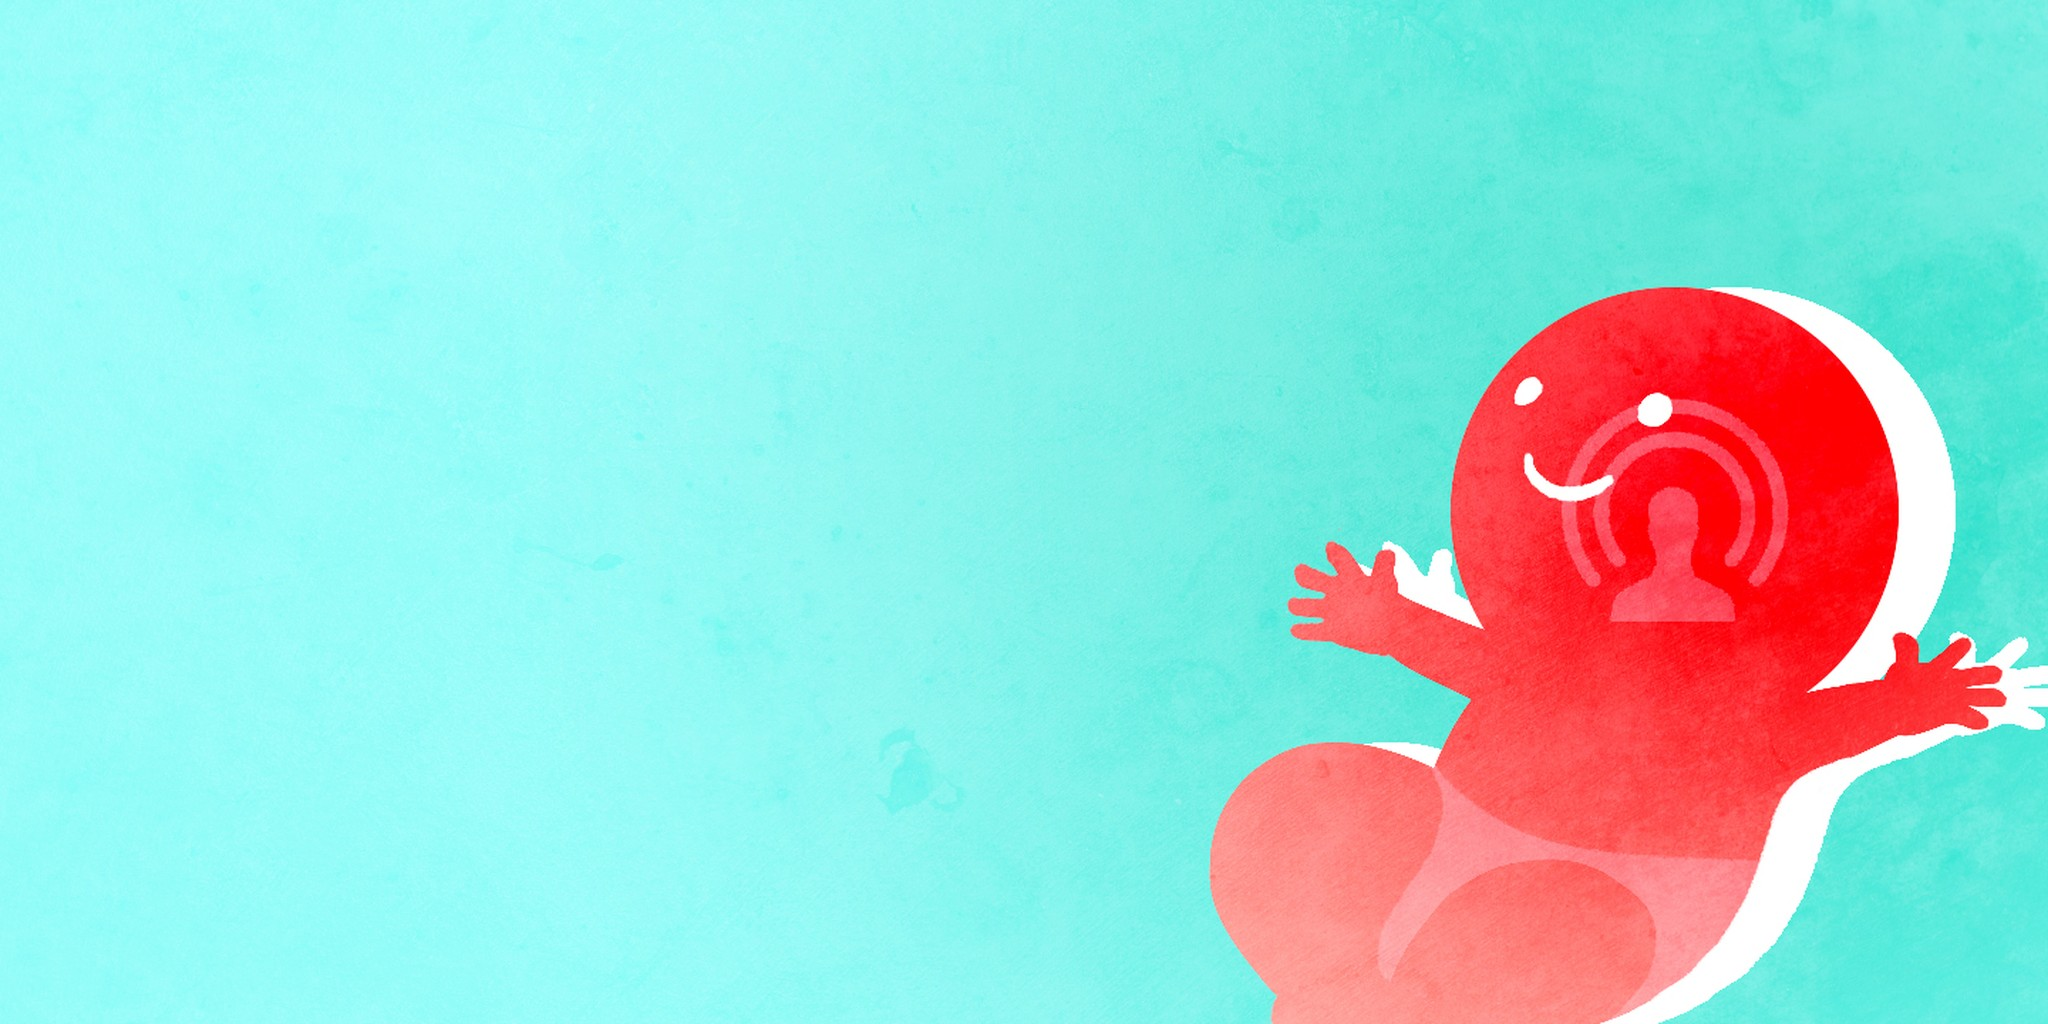 illustration of a baby that looks like the facebook live logo